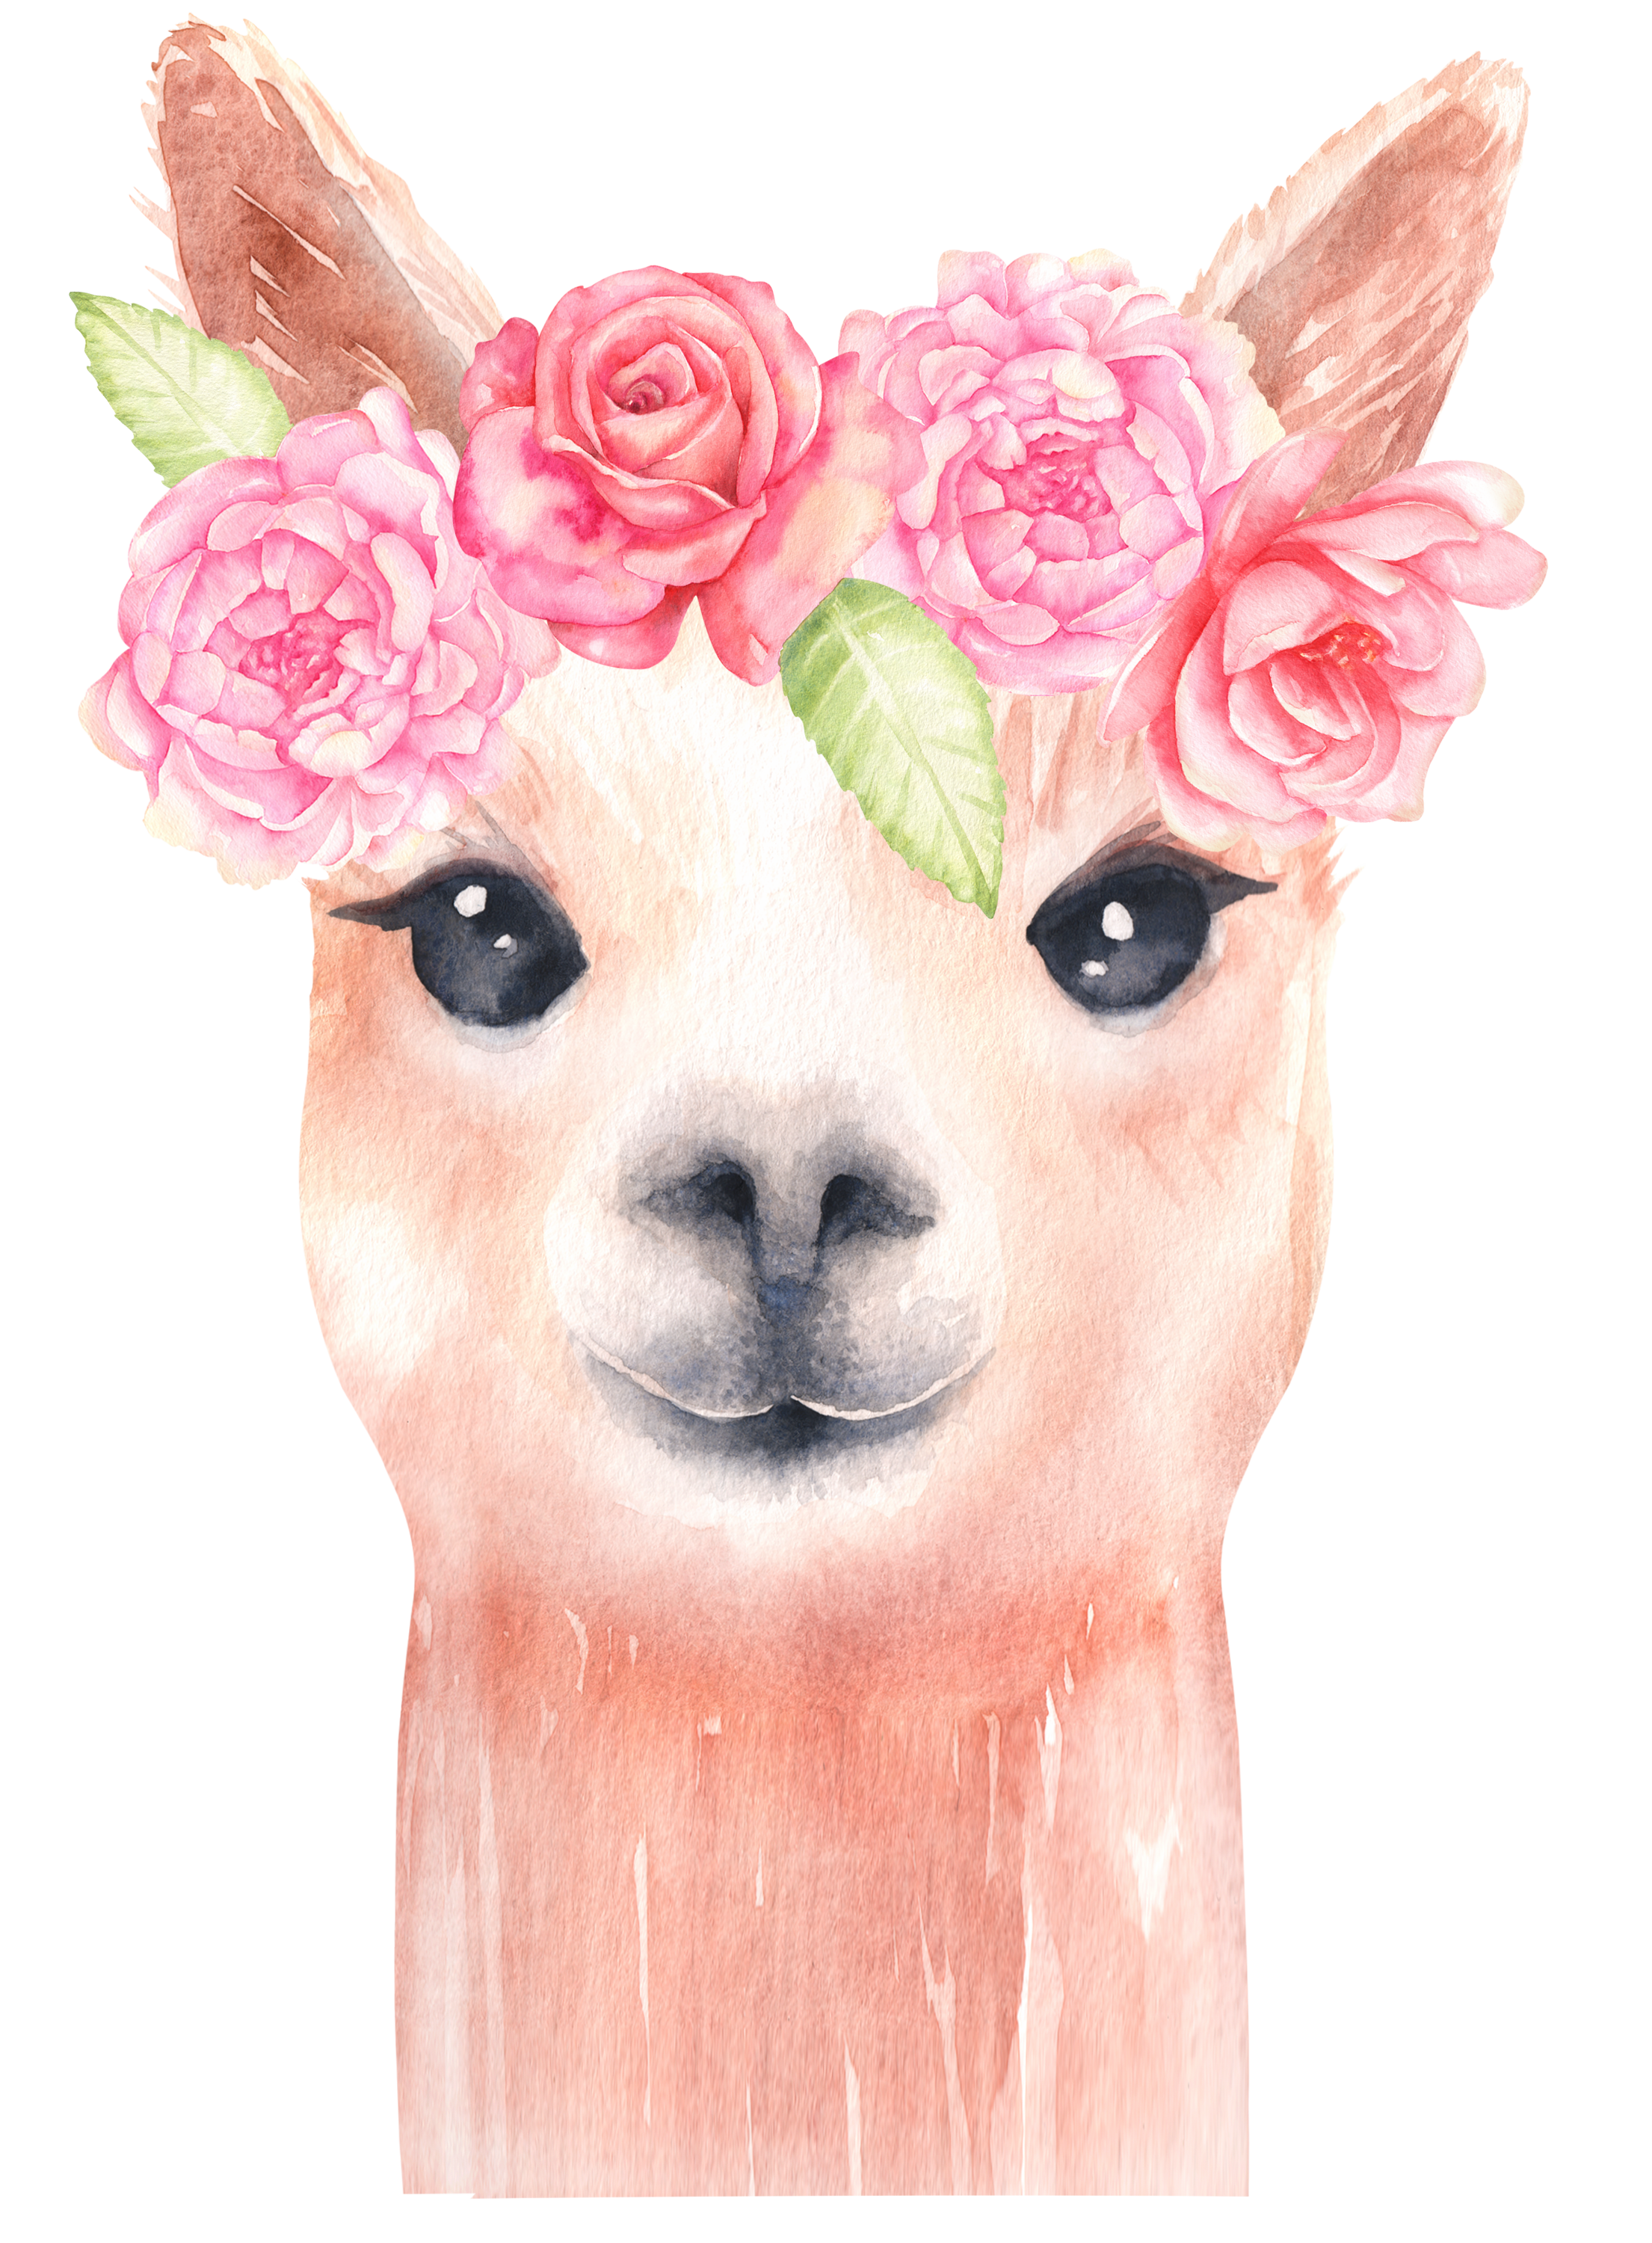 Llama graphics alpaca and. Flower clipart watercolor clipart transparent library